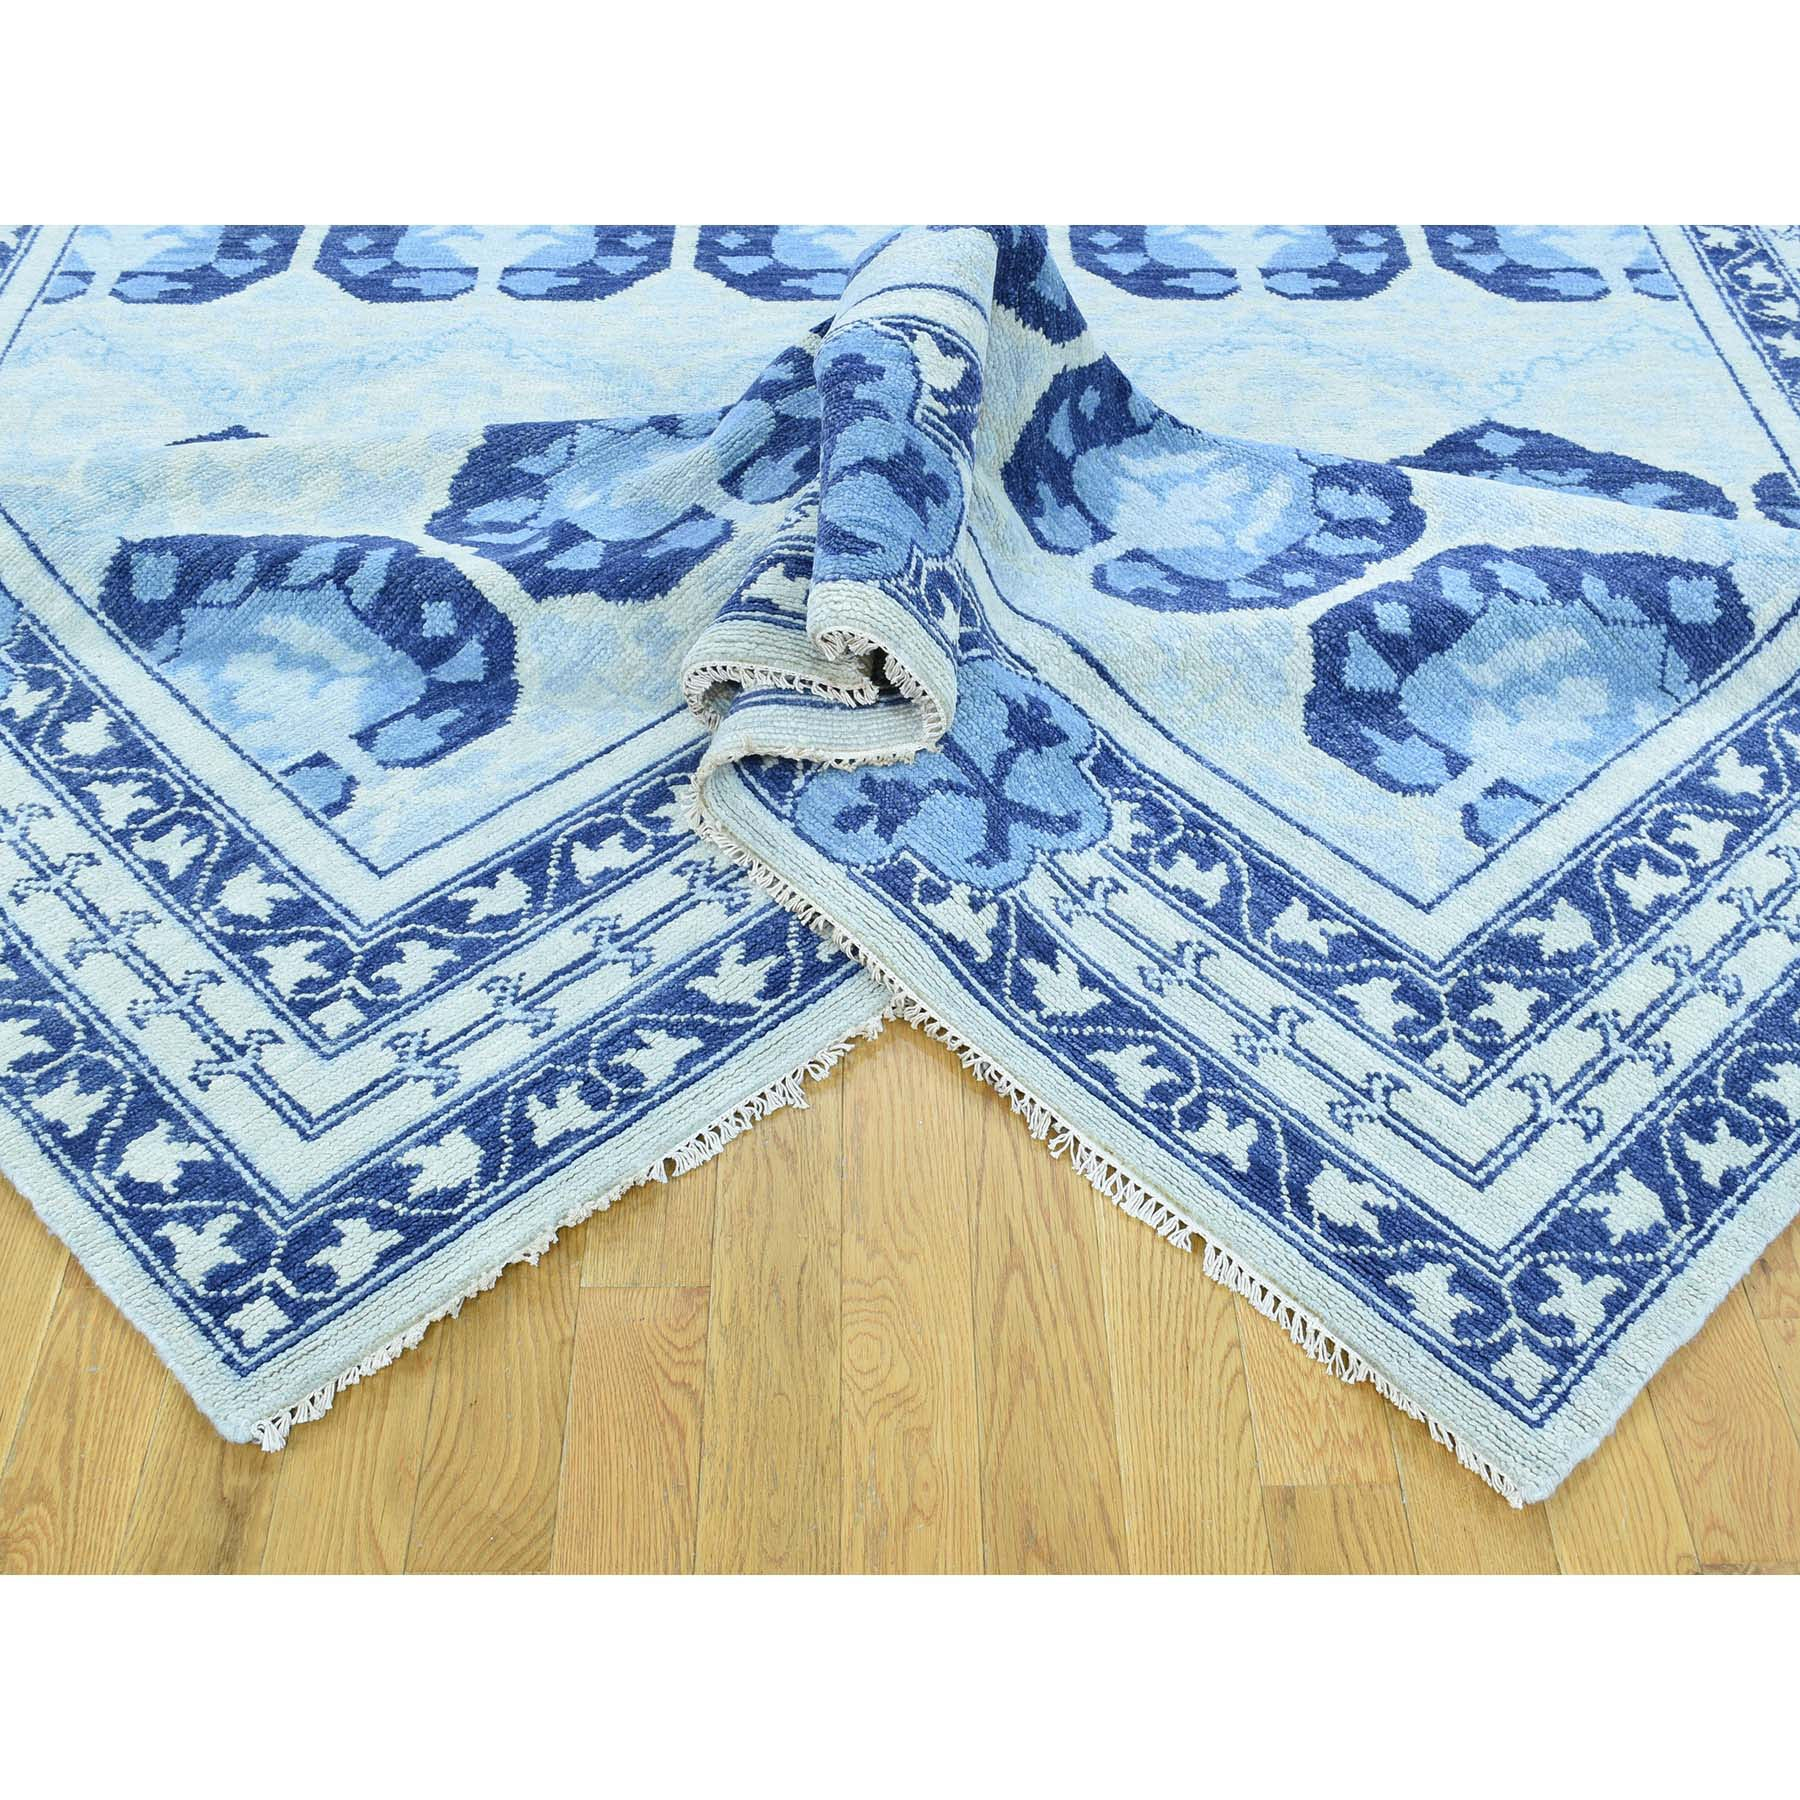 "Handmade Modern and Contemporary Rectangle Rug > Design# SH32164 > Size: 8'-1"" x 10'-0"" [ONLINE ONLY]"